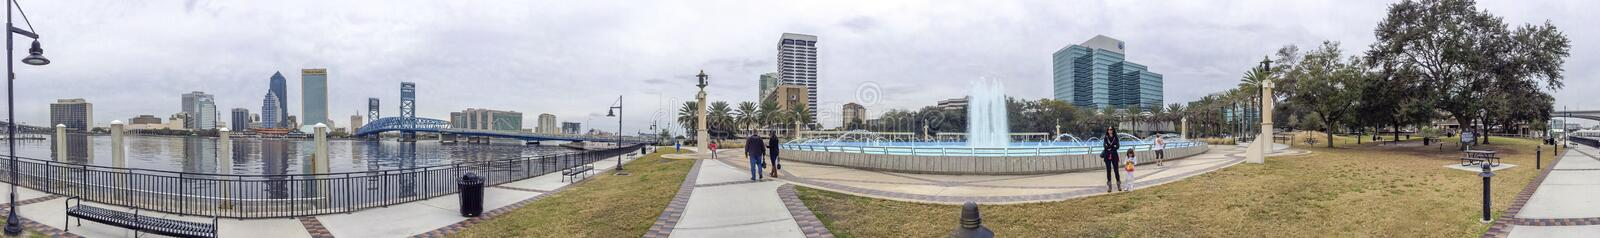 JACKSONVILLE, FL - FEBRUARY 2016: Tourists walk along city streets. The city is a major attraction in Florida.  royalty free stock photo